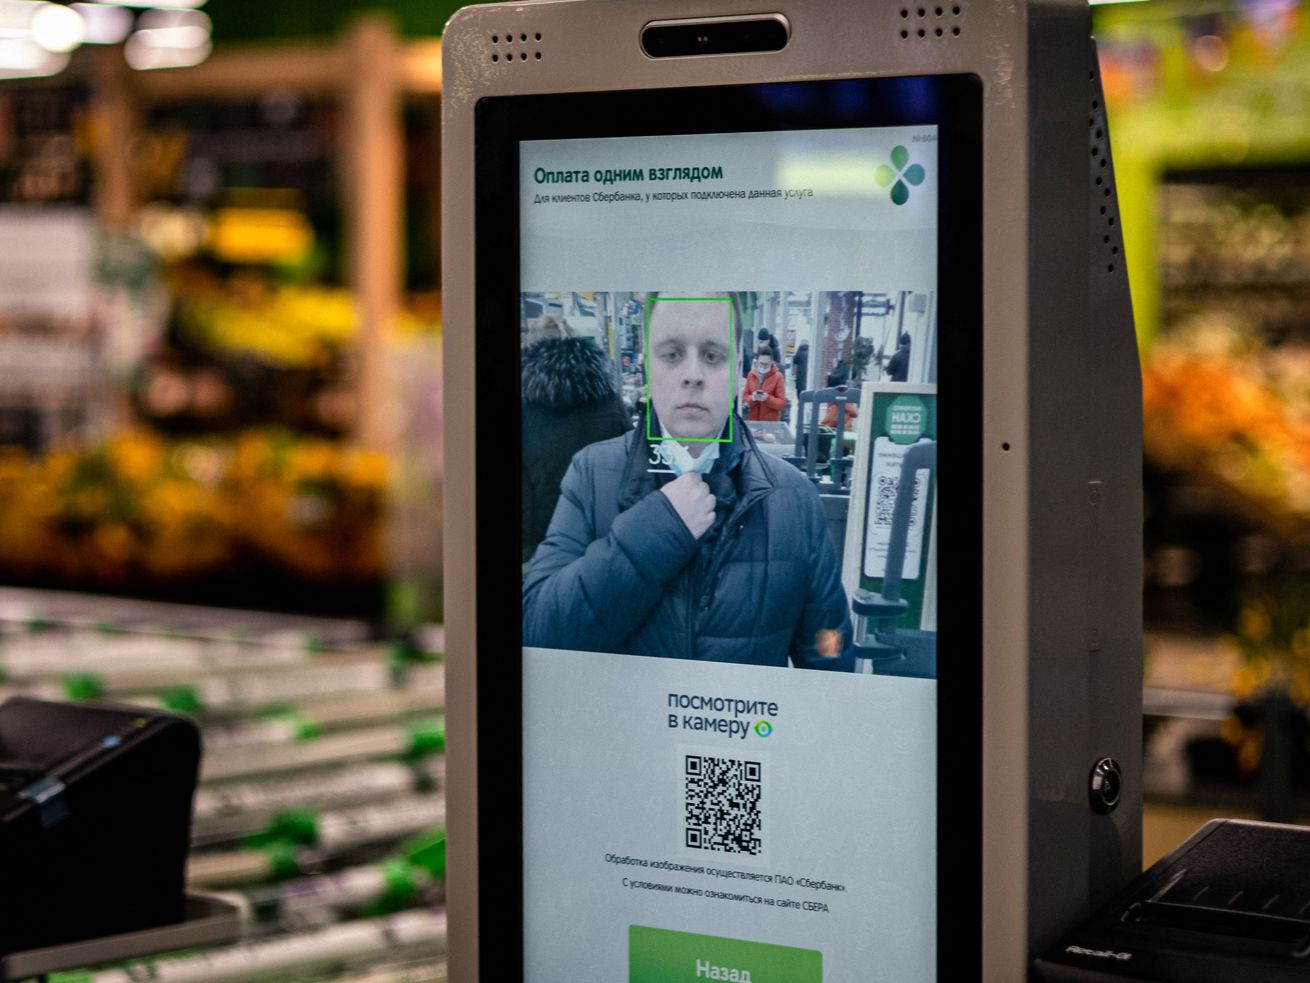 A facial recognition payment system is demonstrated at a self-checkout machine in a Perekrestok supermarket in Moscow last week. Russia's X5 group, the country's leading food retailer, has announced the launch of a facial recognition payment system, the latest expansion of a technology that has sparked privacy and security concerns.